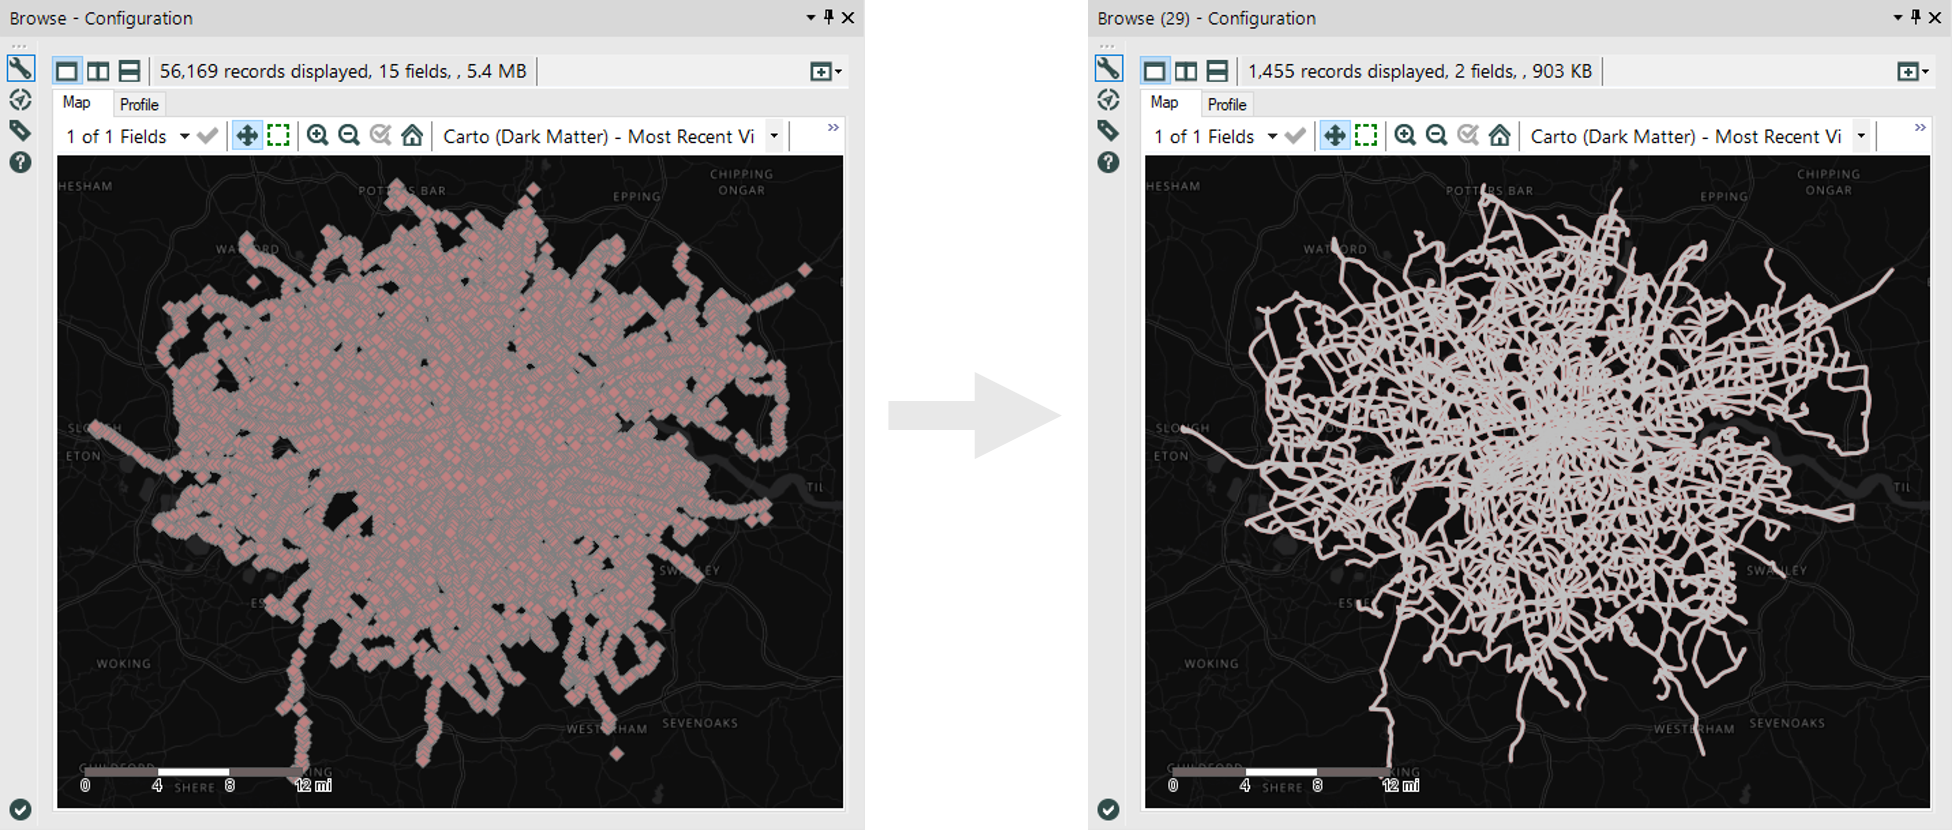 Comparison of centroids and polylines for the bus stops and bus routes respectively